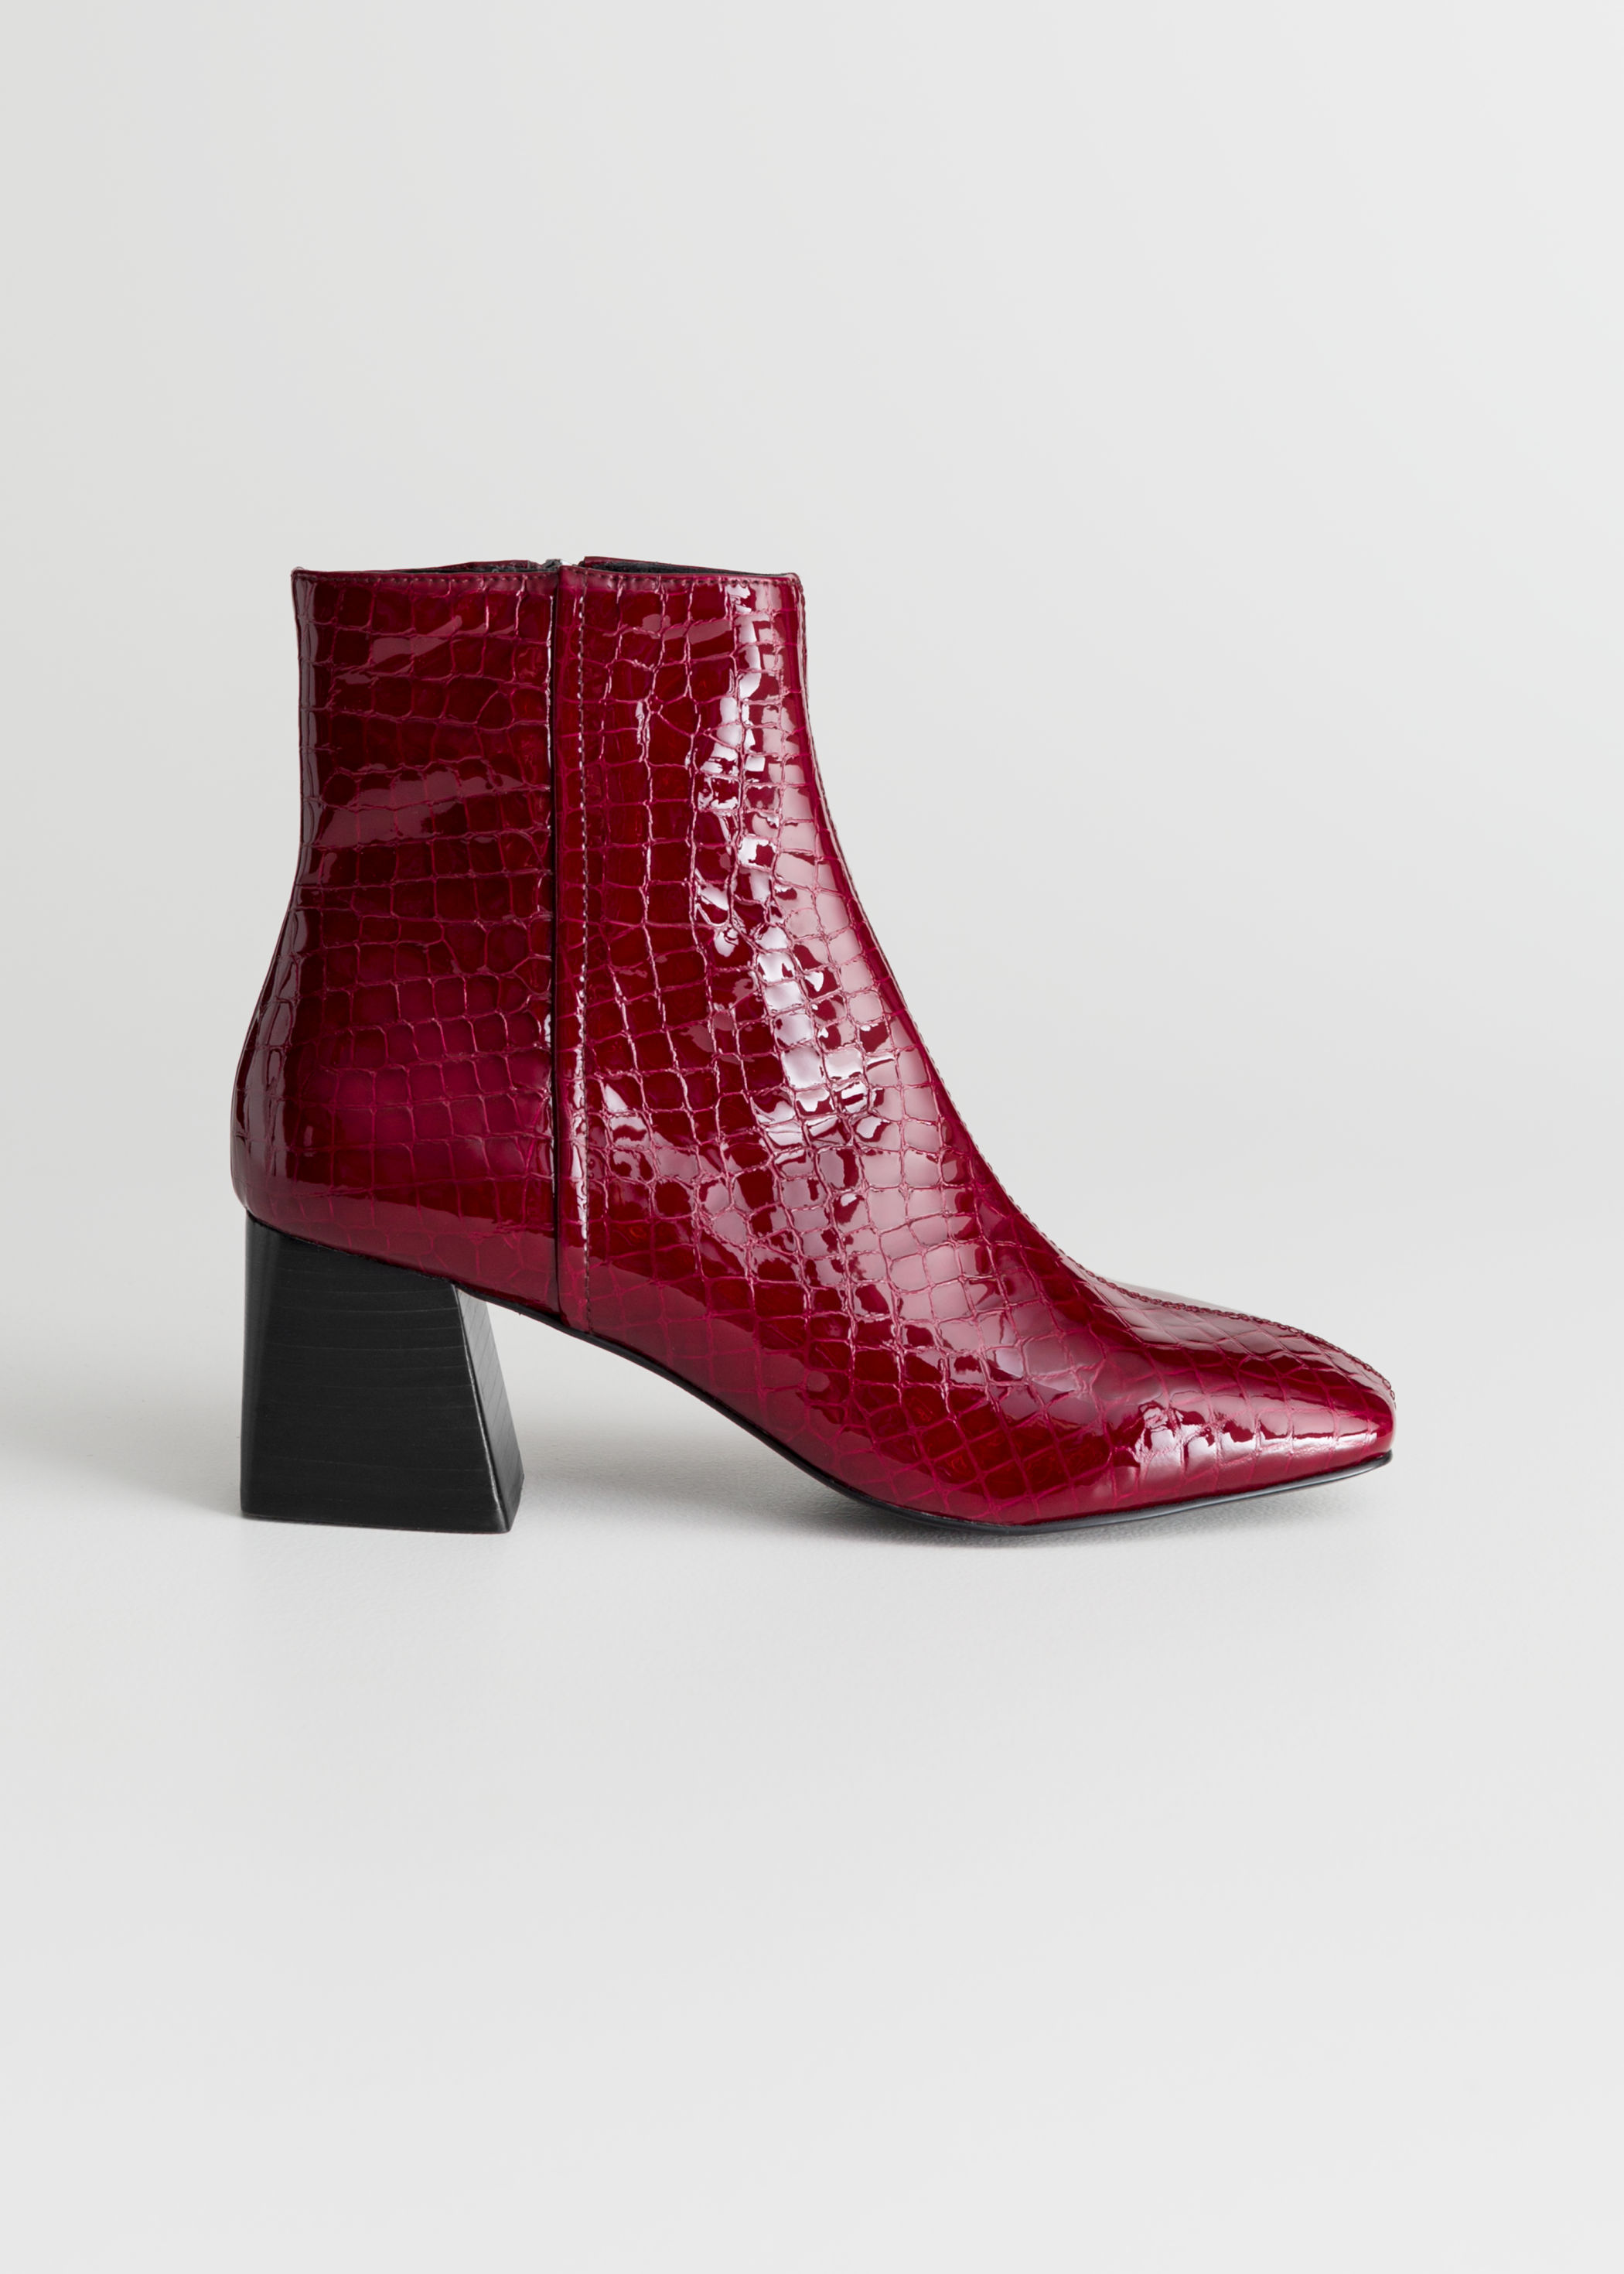 & Other Stories Crocodile Boots